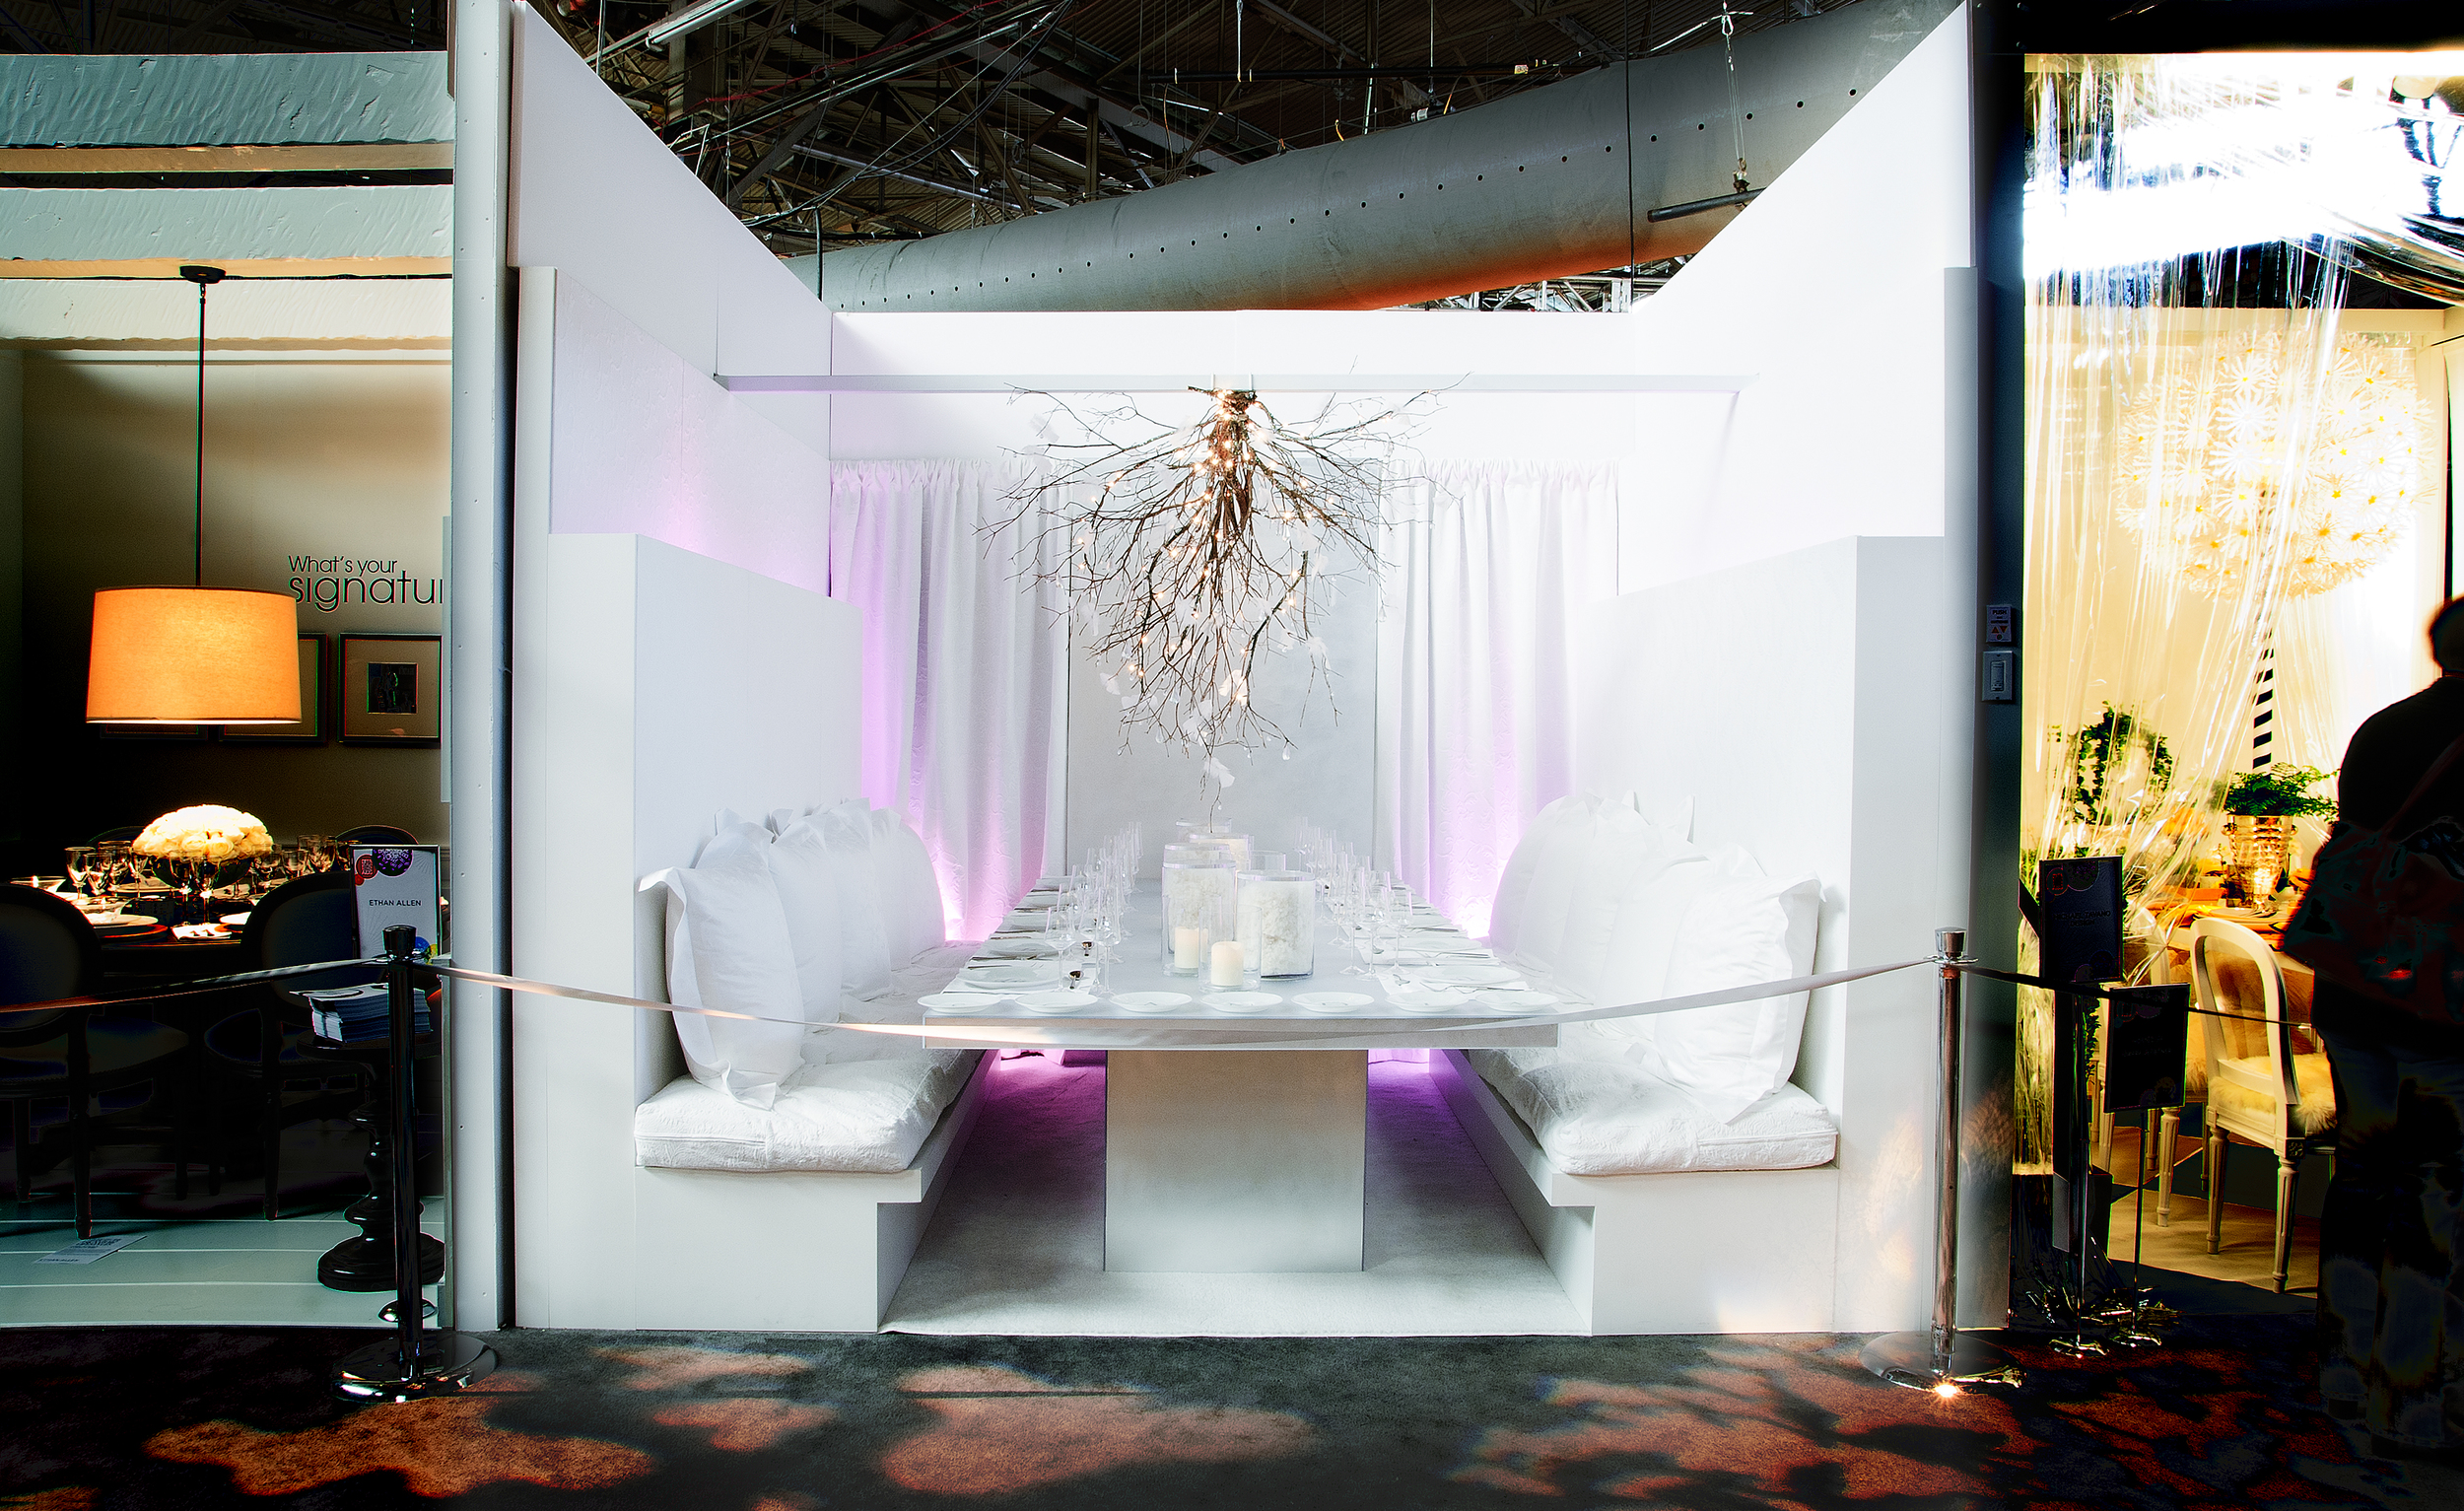 DIFFA; Dining By Design